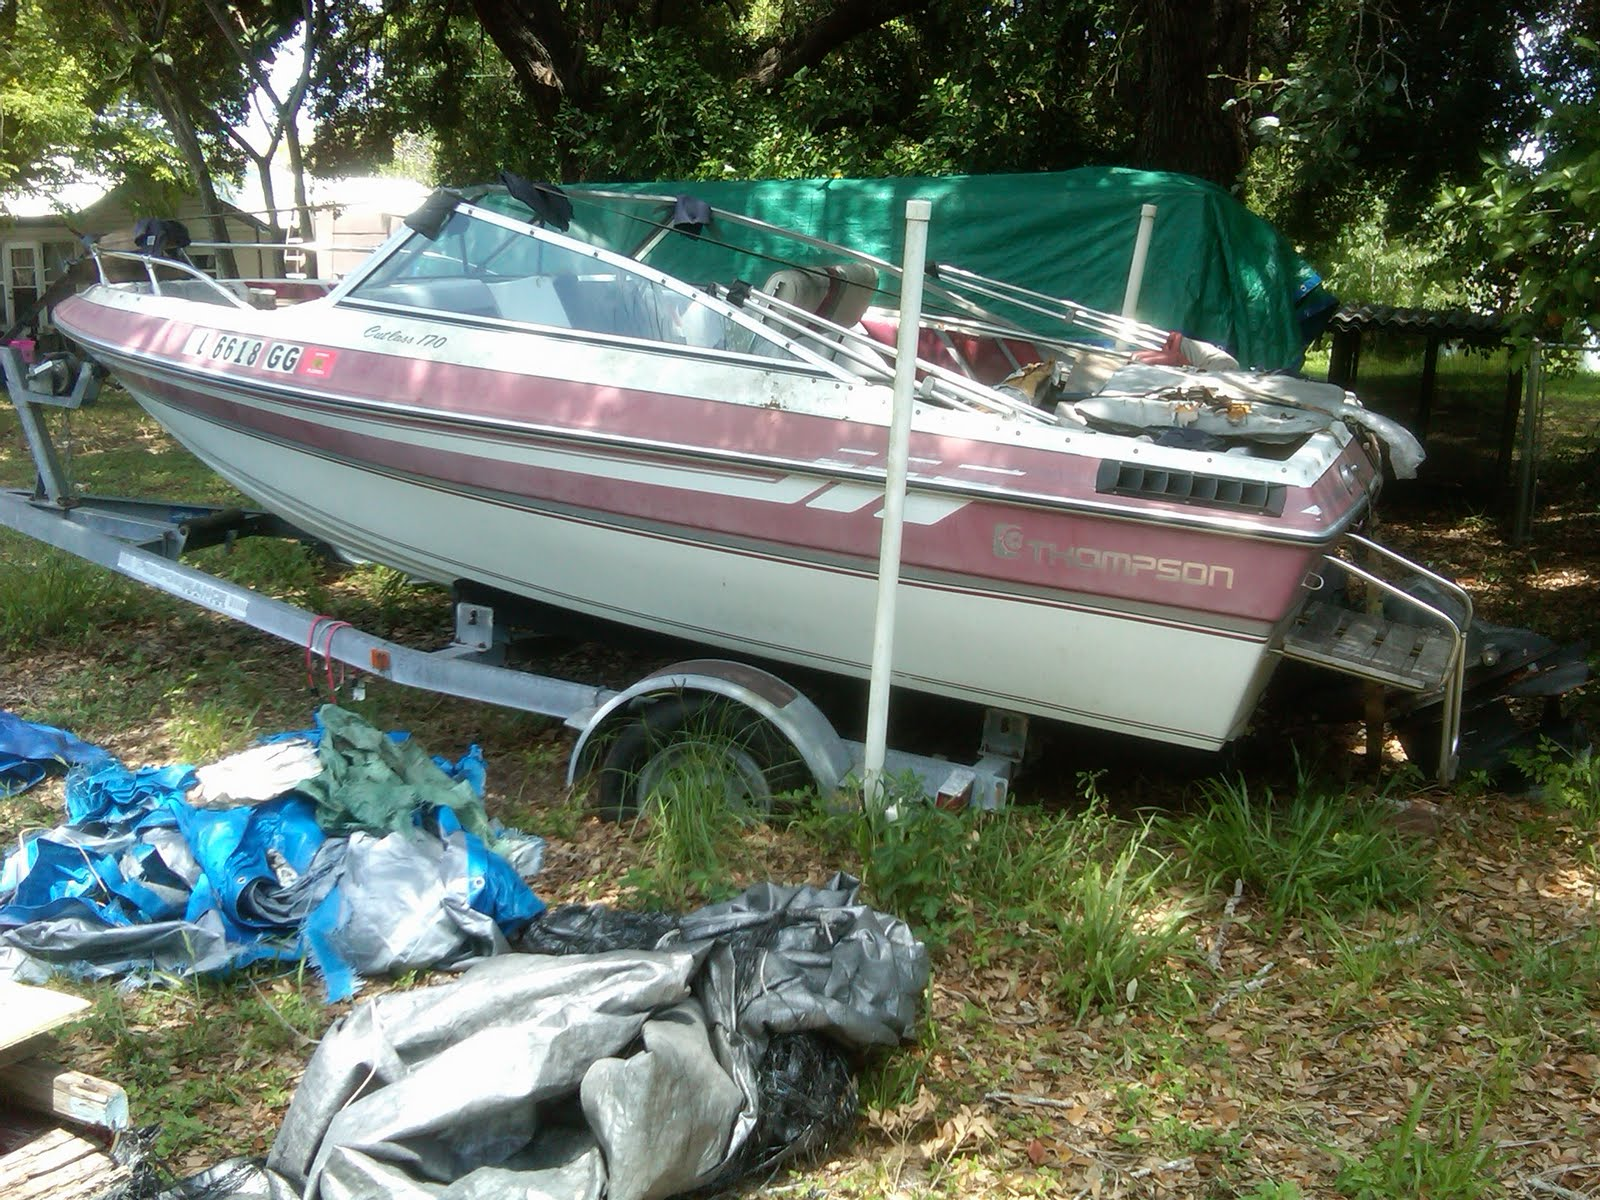 1990 Thompson Cutlass 170 Boat For Sale By Auction See The Ebay Auction To Buy This Boat